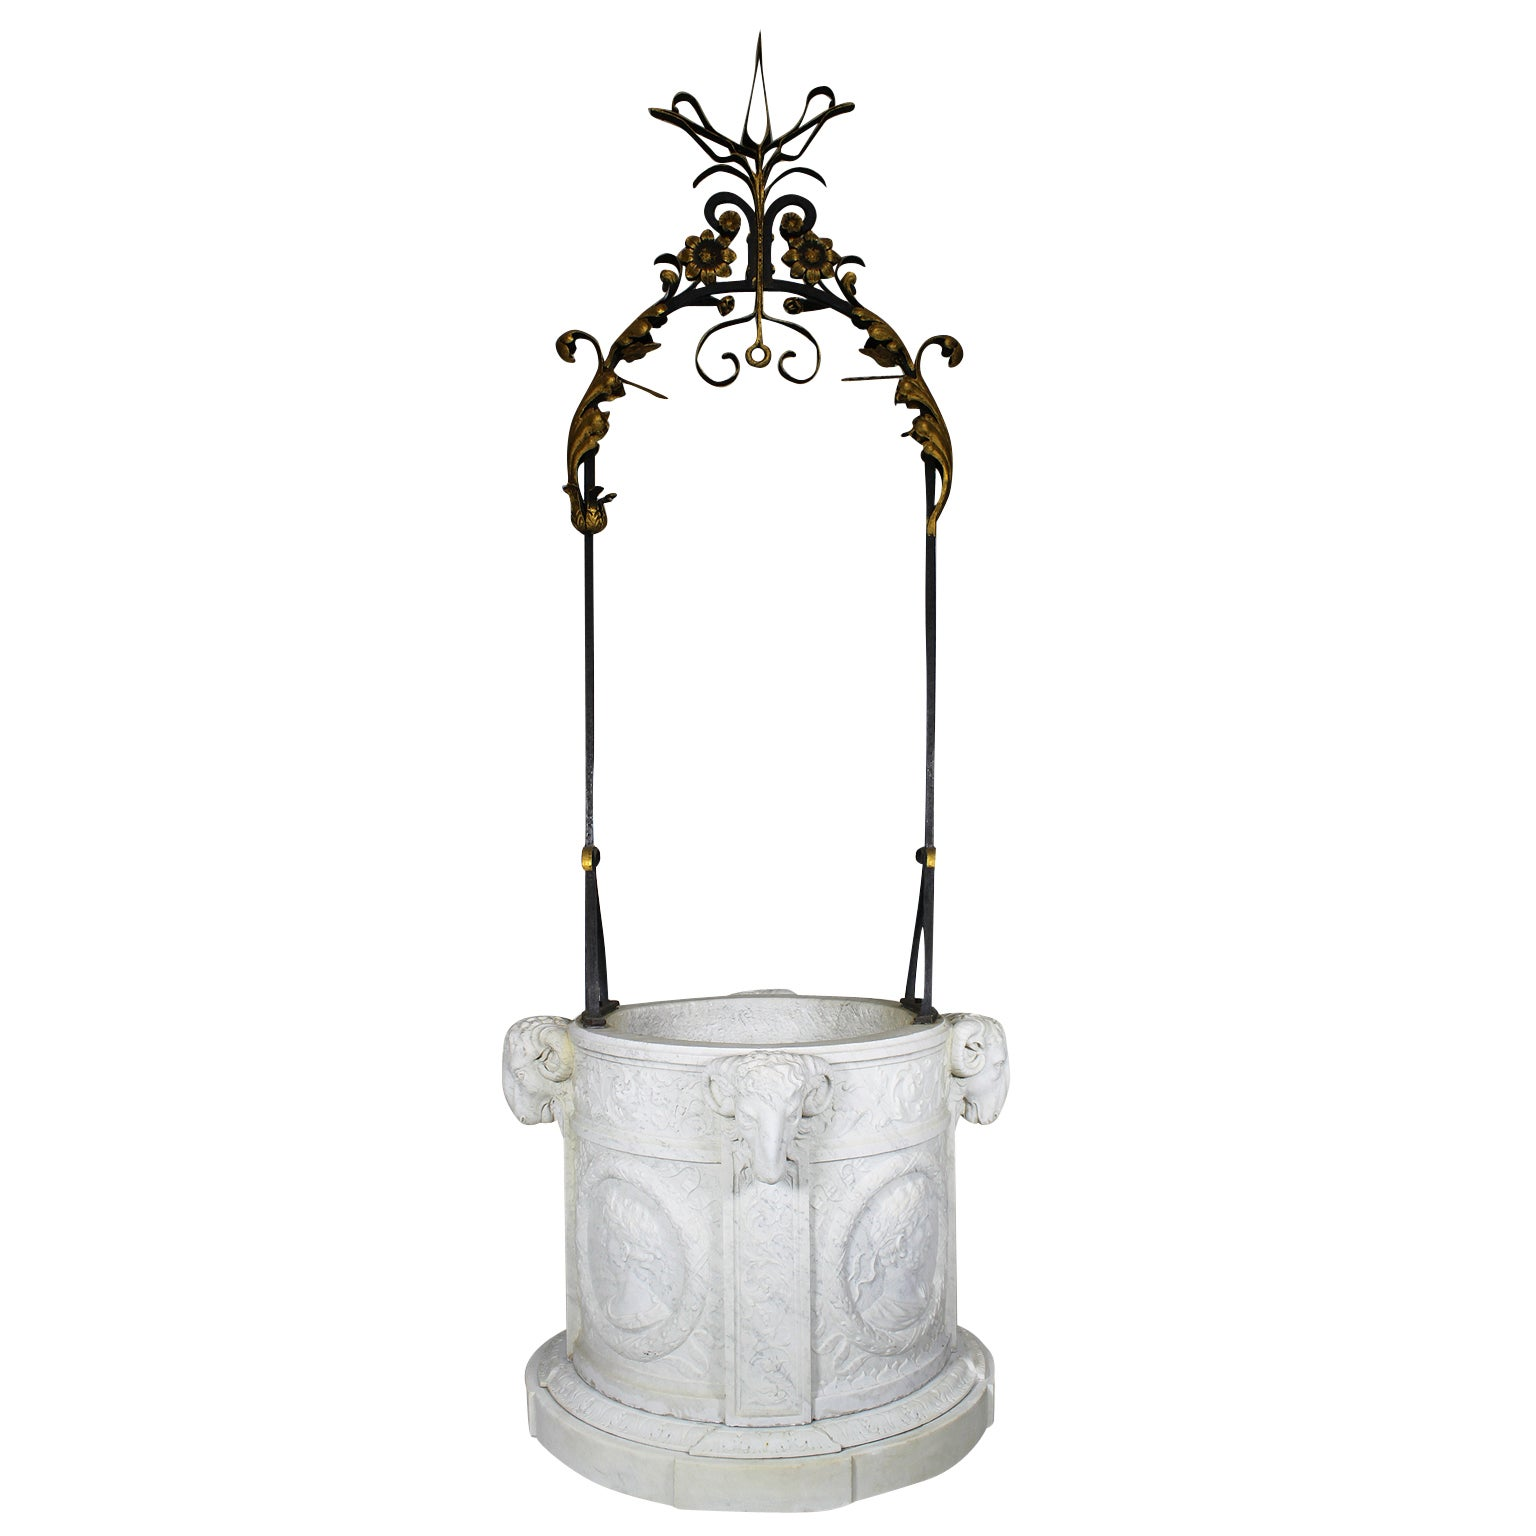 Italian 19th Century Carved Carrara Marble and Wrought Iron Wishing Well Head